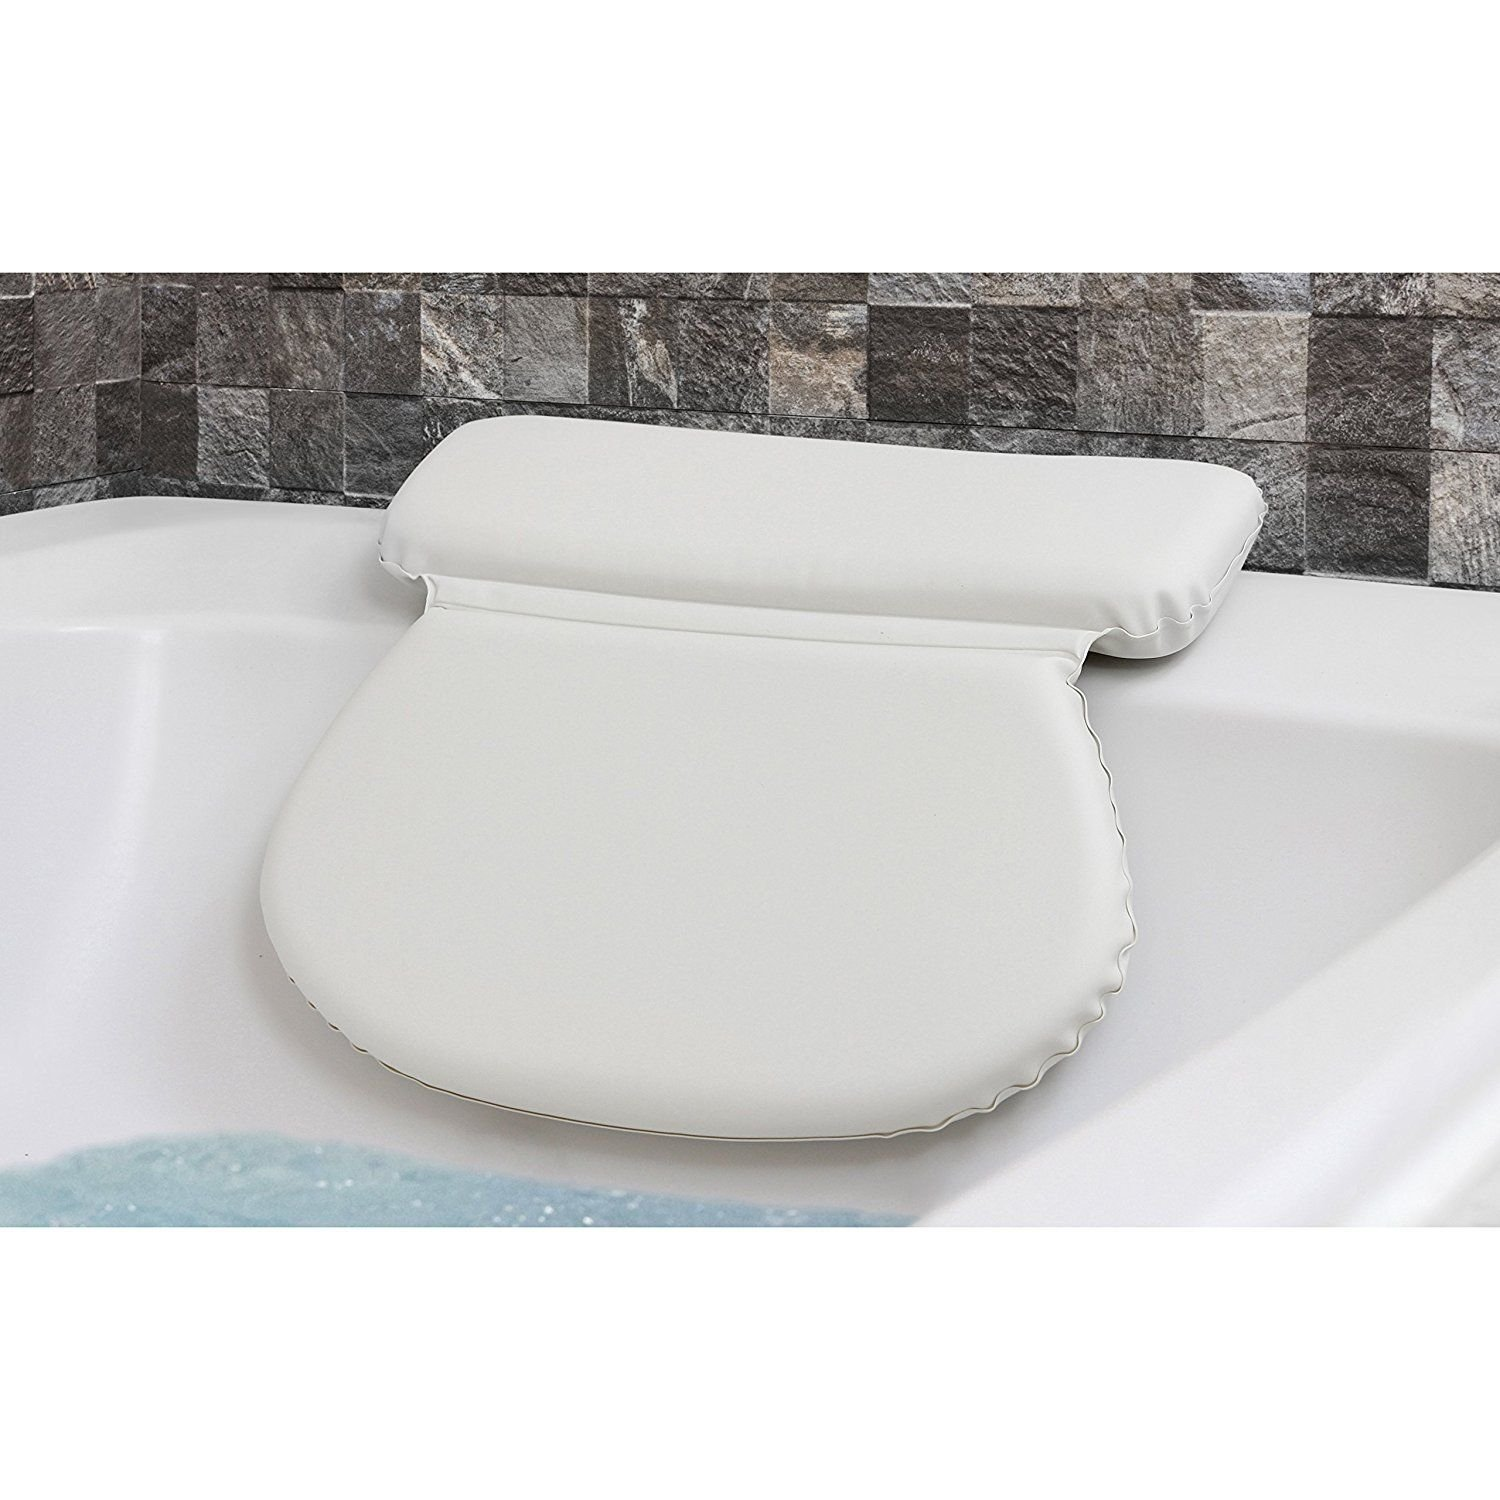 Luxury Comfort Spa Bath Pillow Cushion Mat with 7 Non-Slip Suction Cups - Turn Your Bath into a Spa Experience